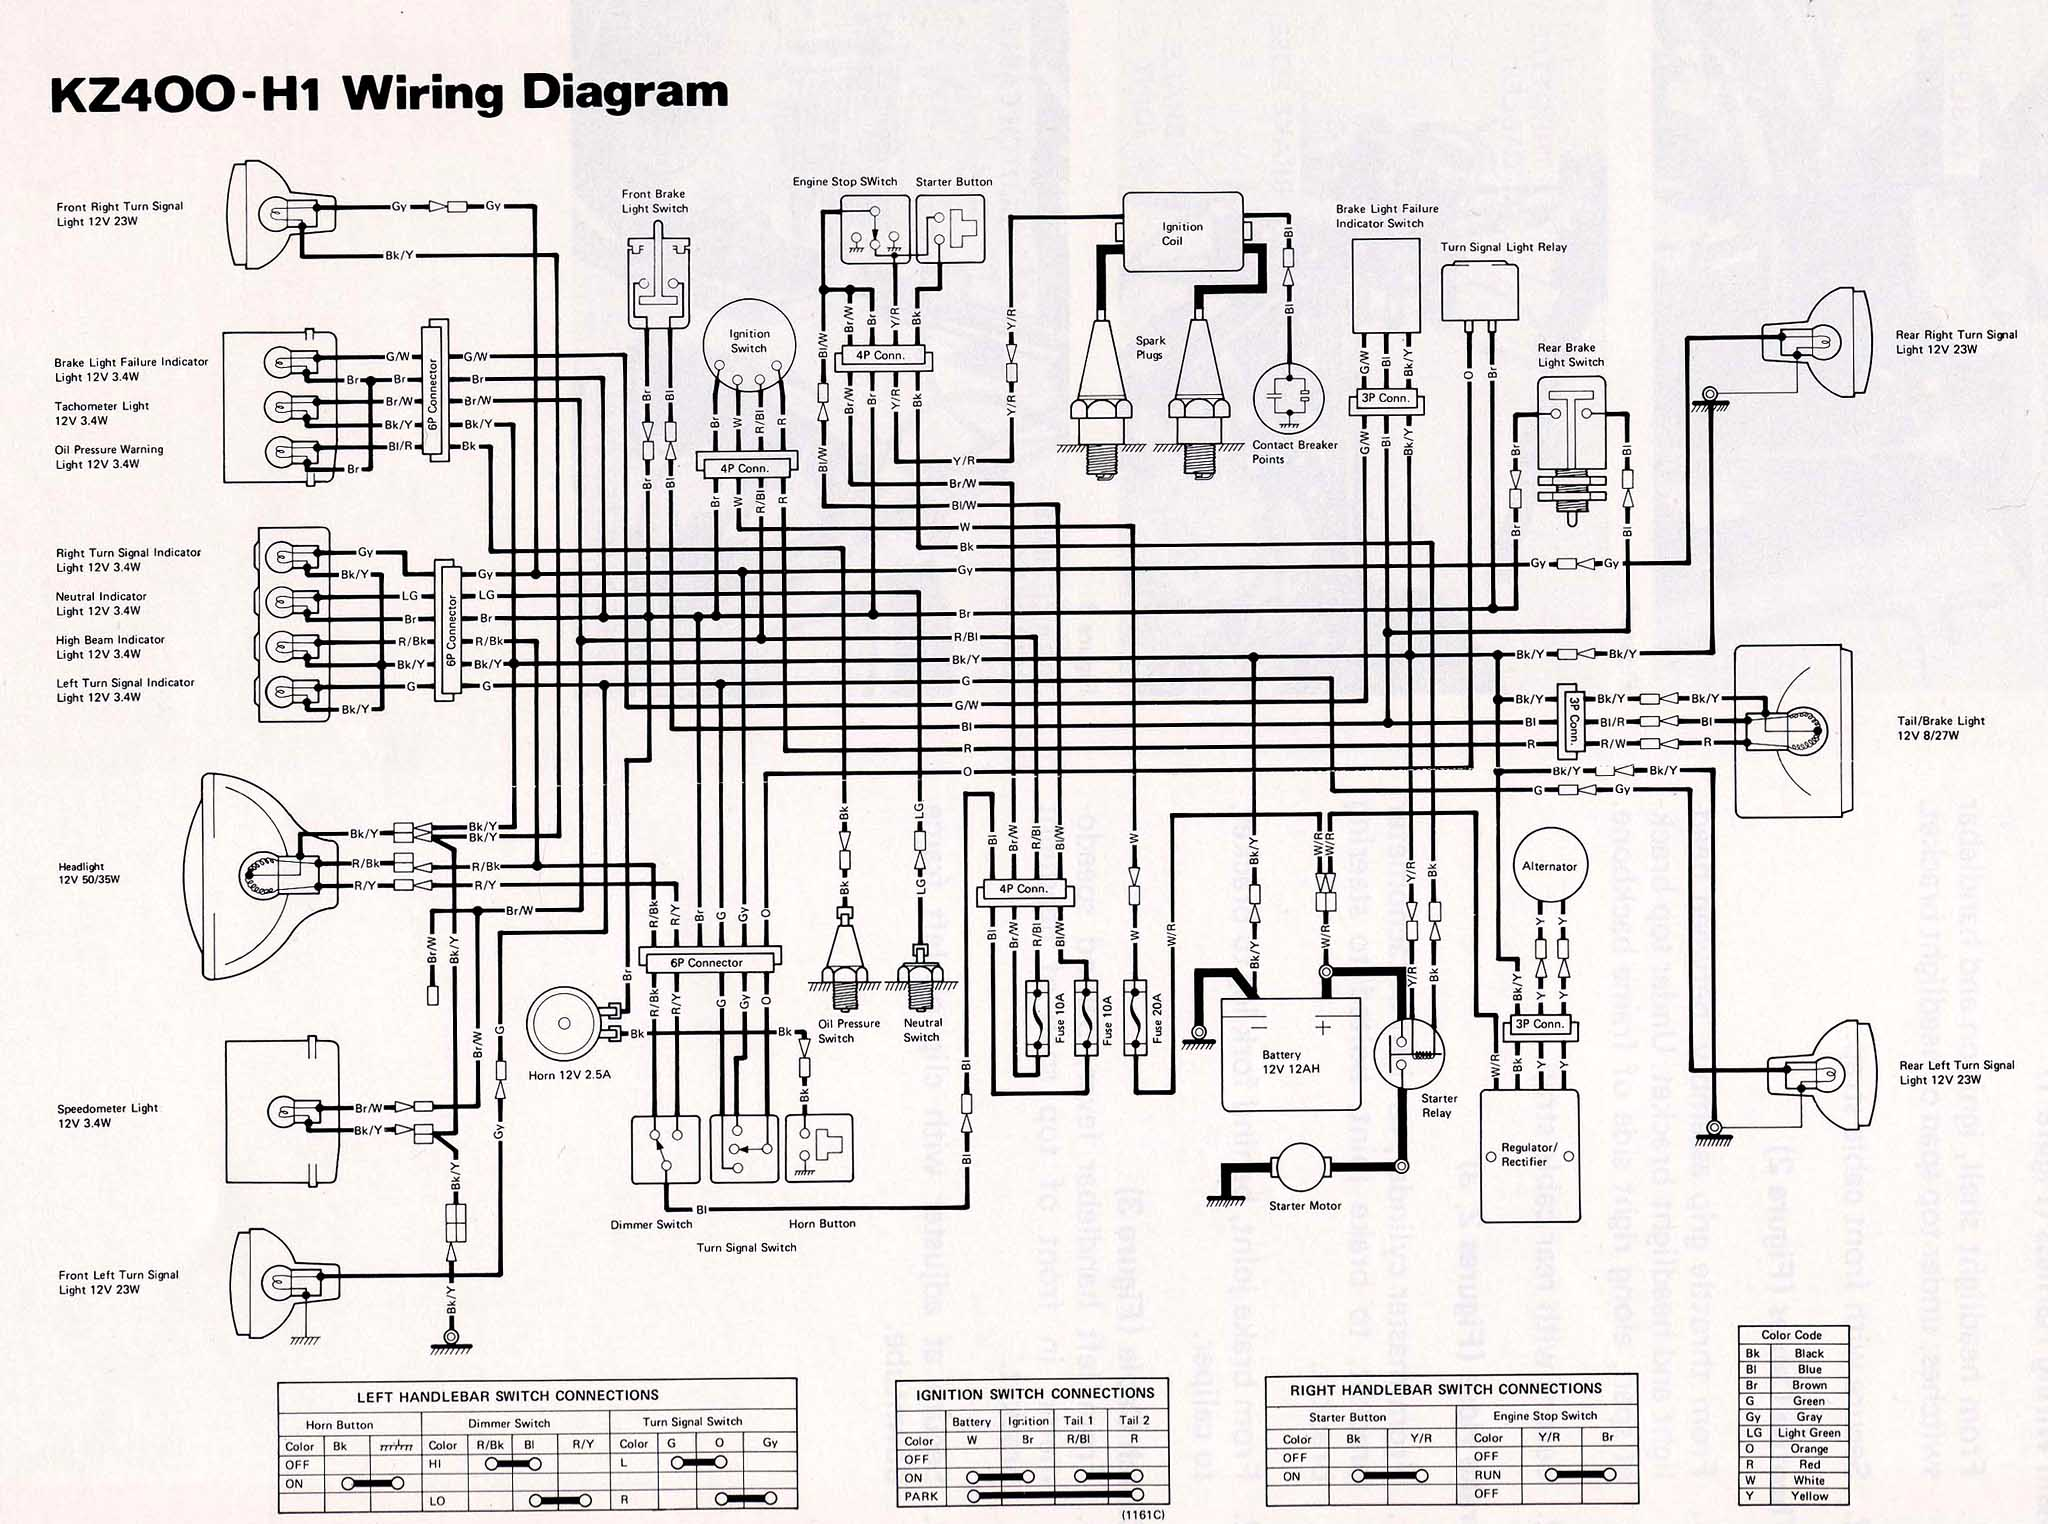 1981 kawasaki 440 ltd wiring diagram   36 wiring diagram images